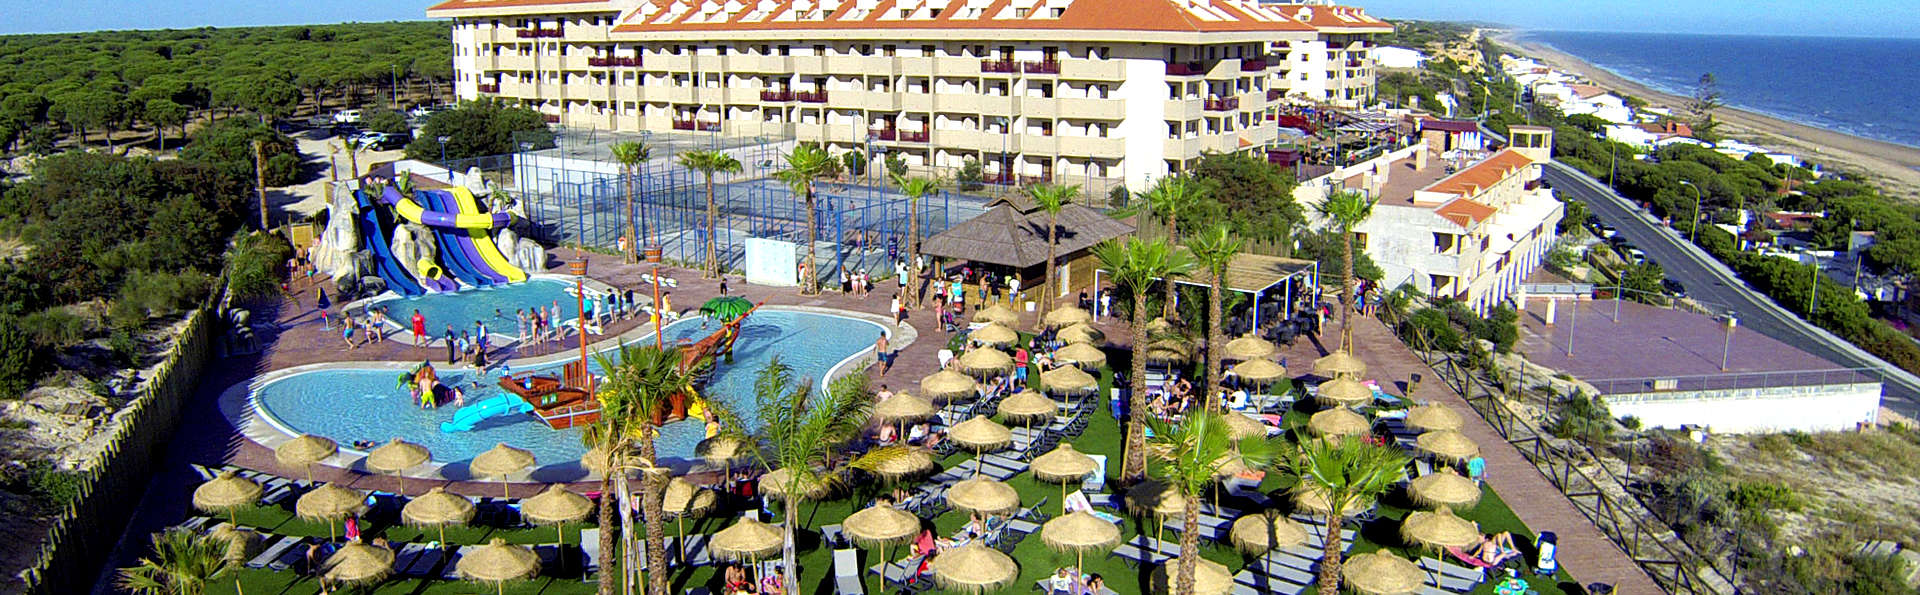 Ohtels Mazagón  - Edit_Pool2.jpg